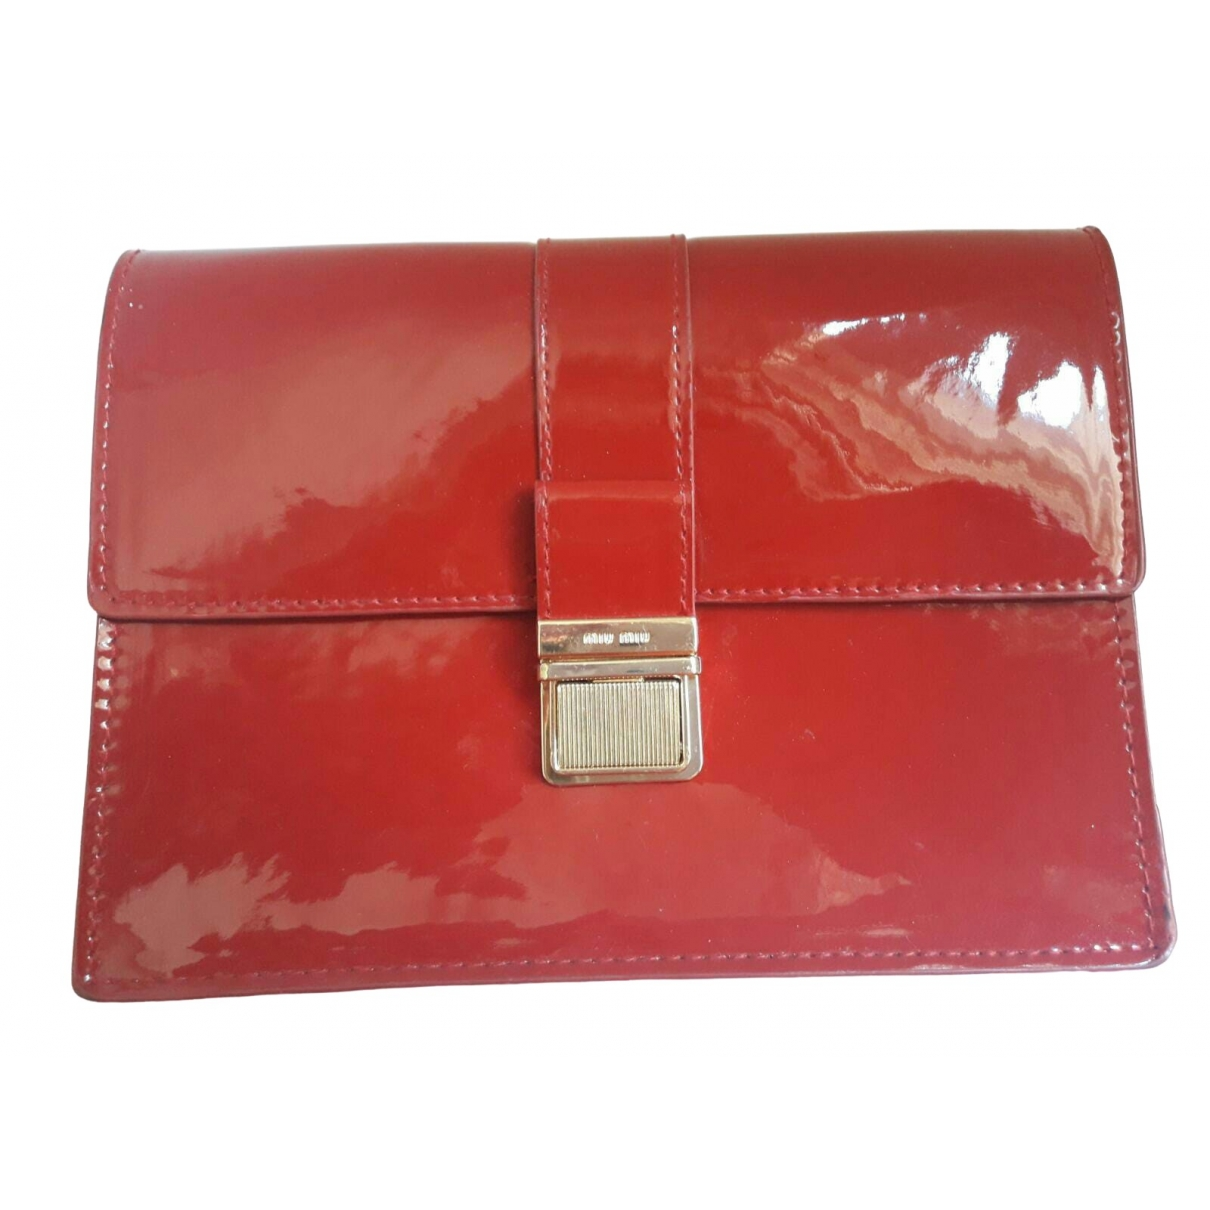 Miu Miu \N Burgundy Patent leather Clutch bag for Women \N